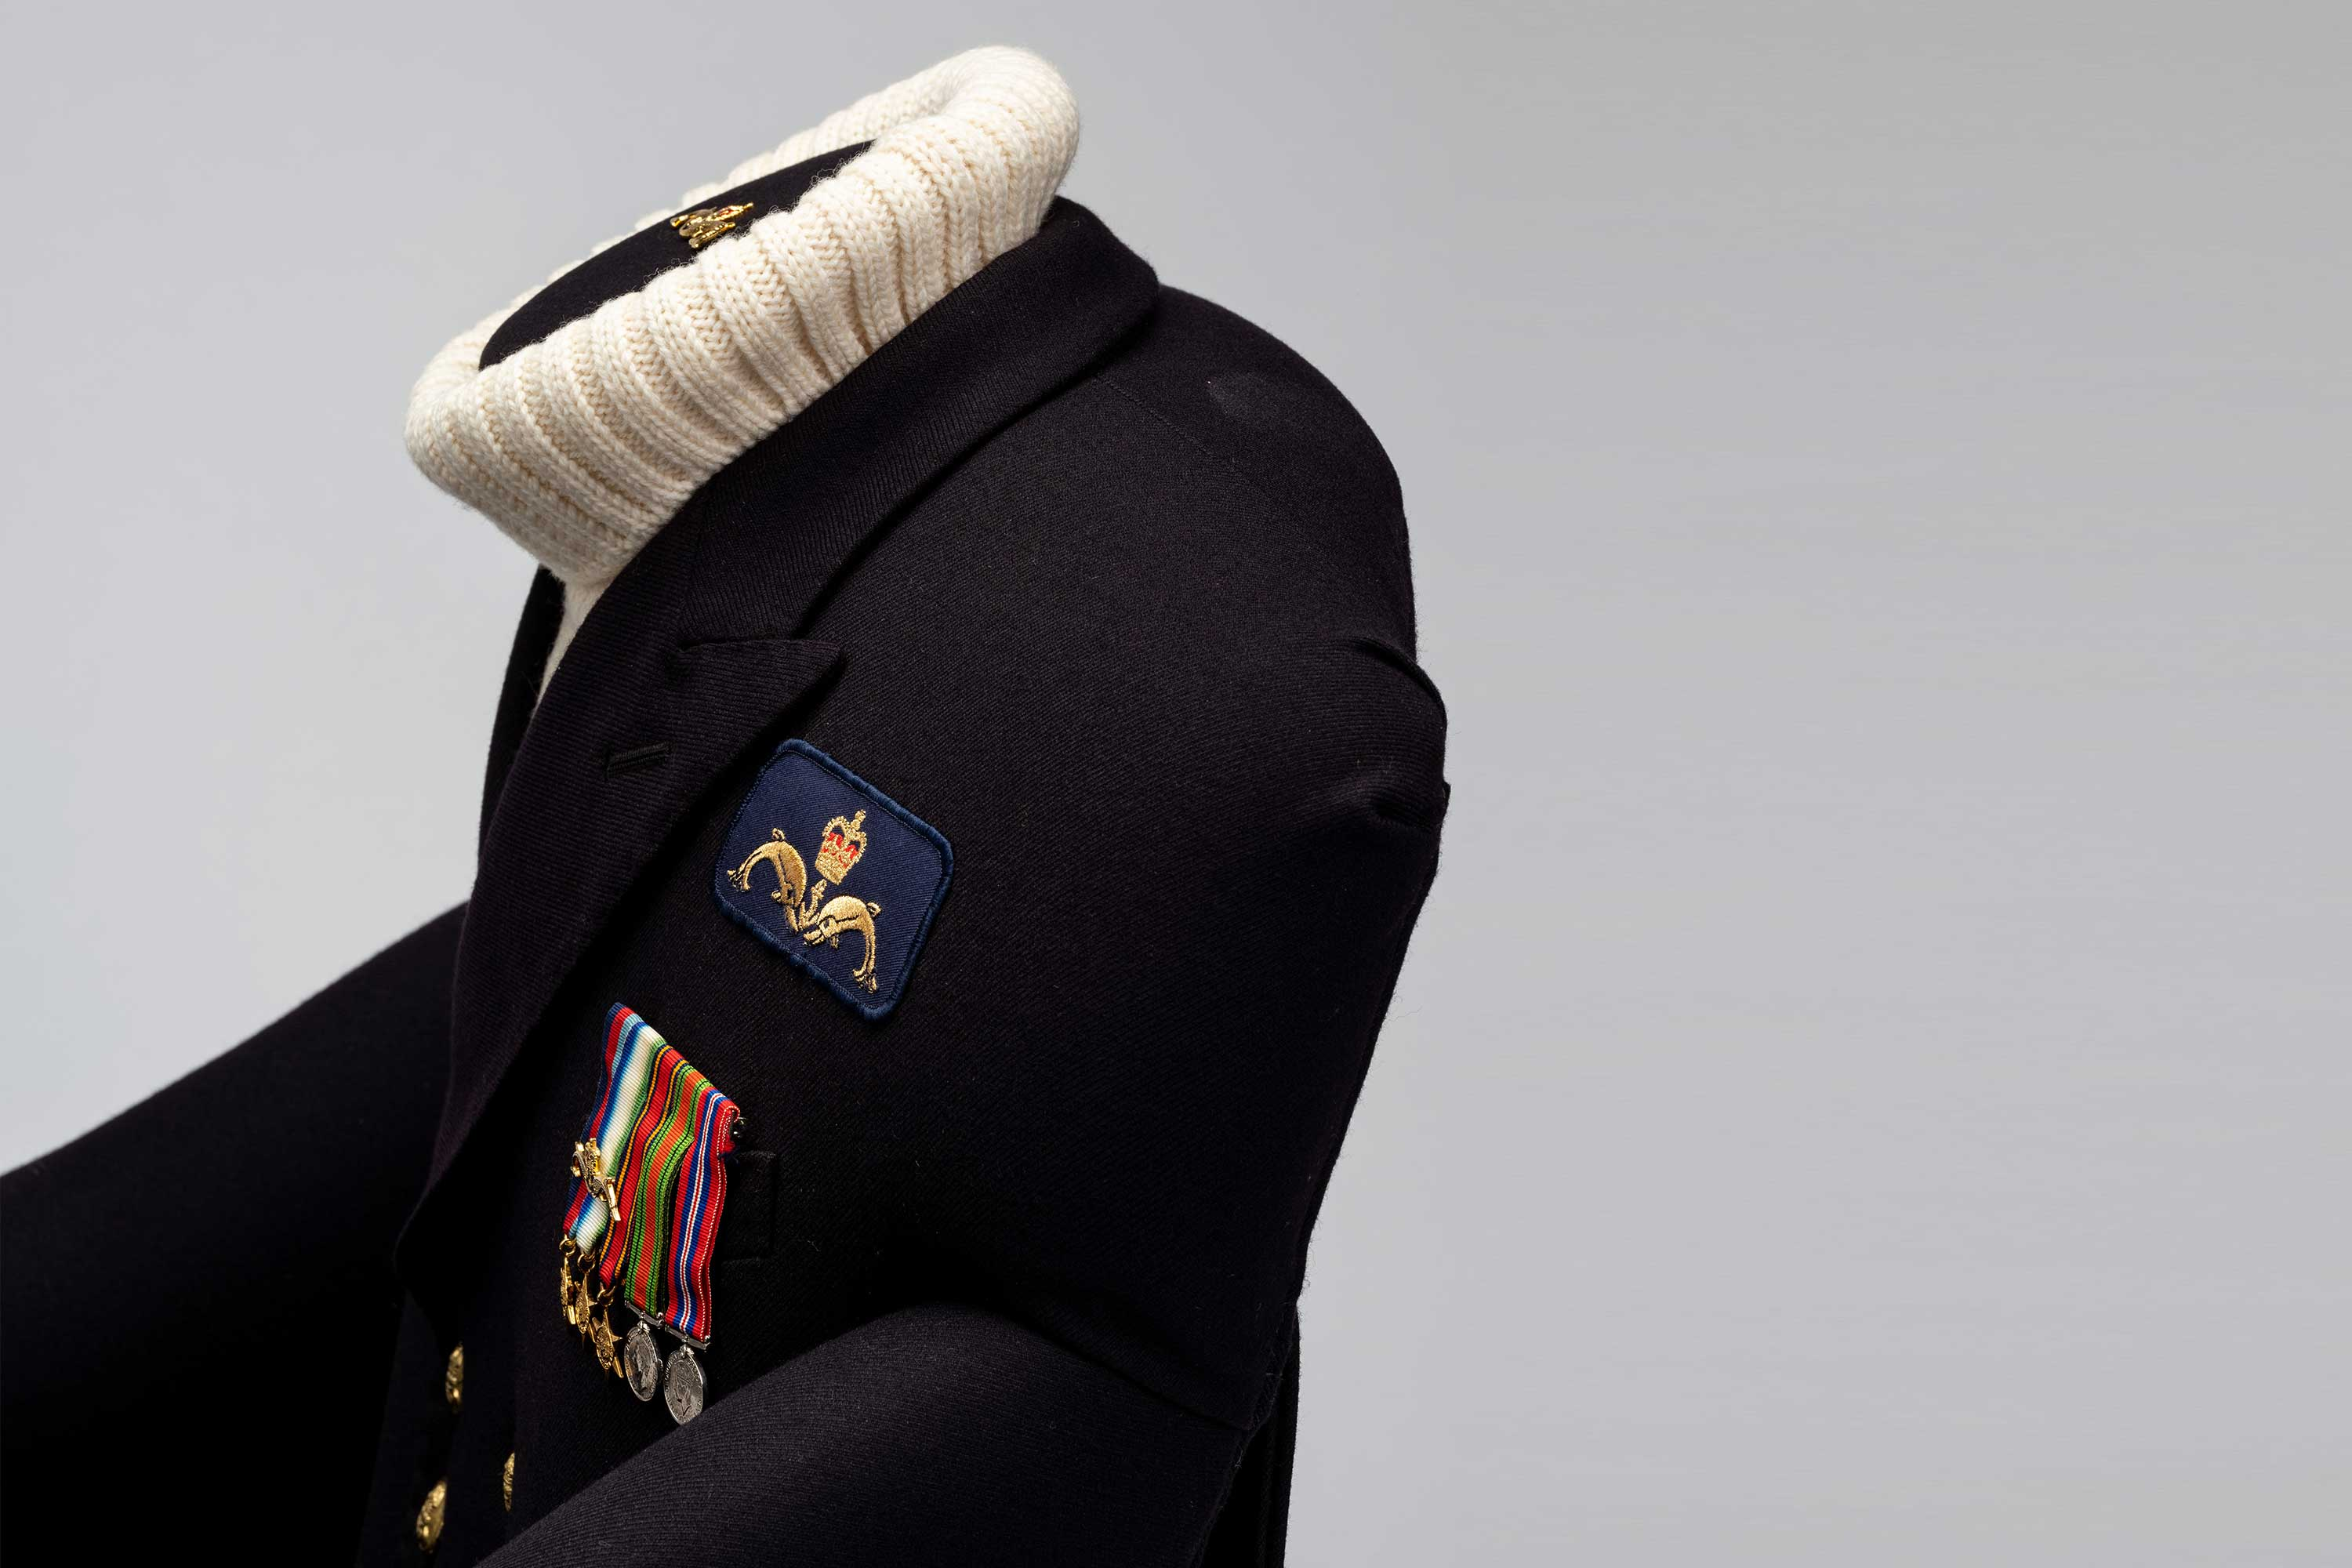 Submariner naval uniform crafted into bespoke chair